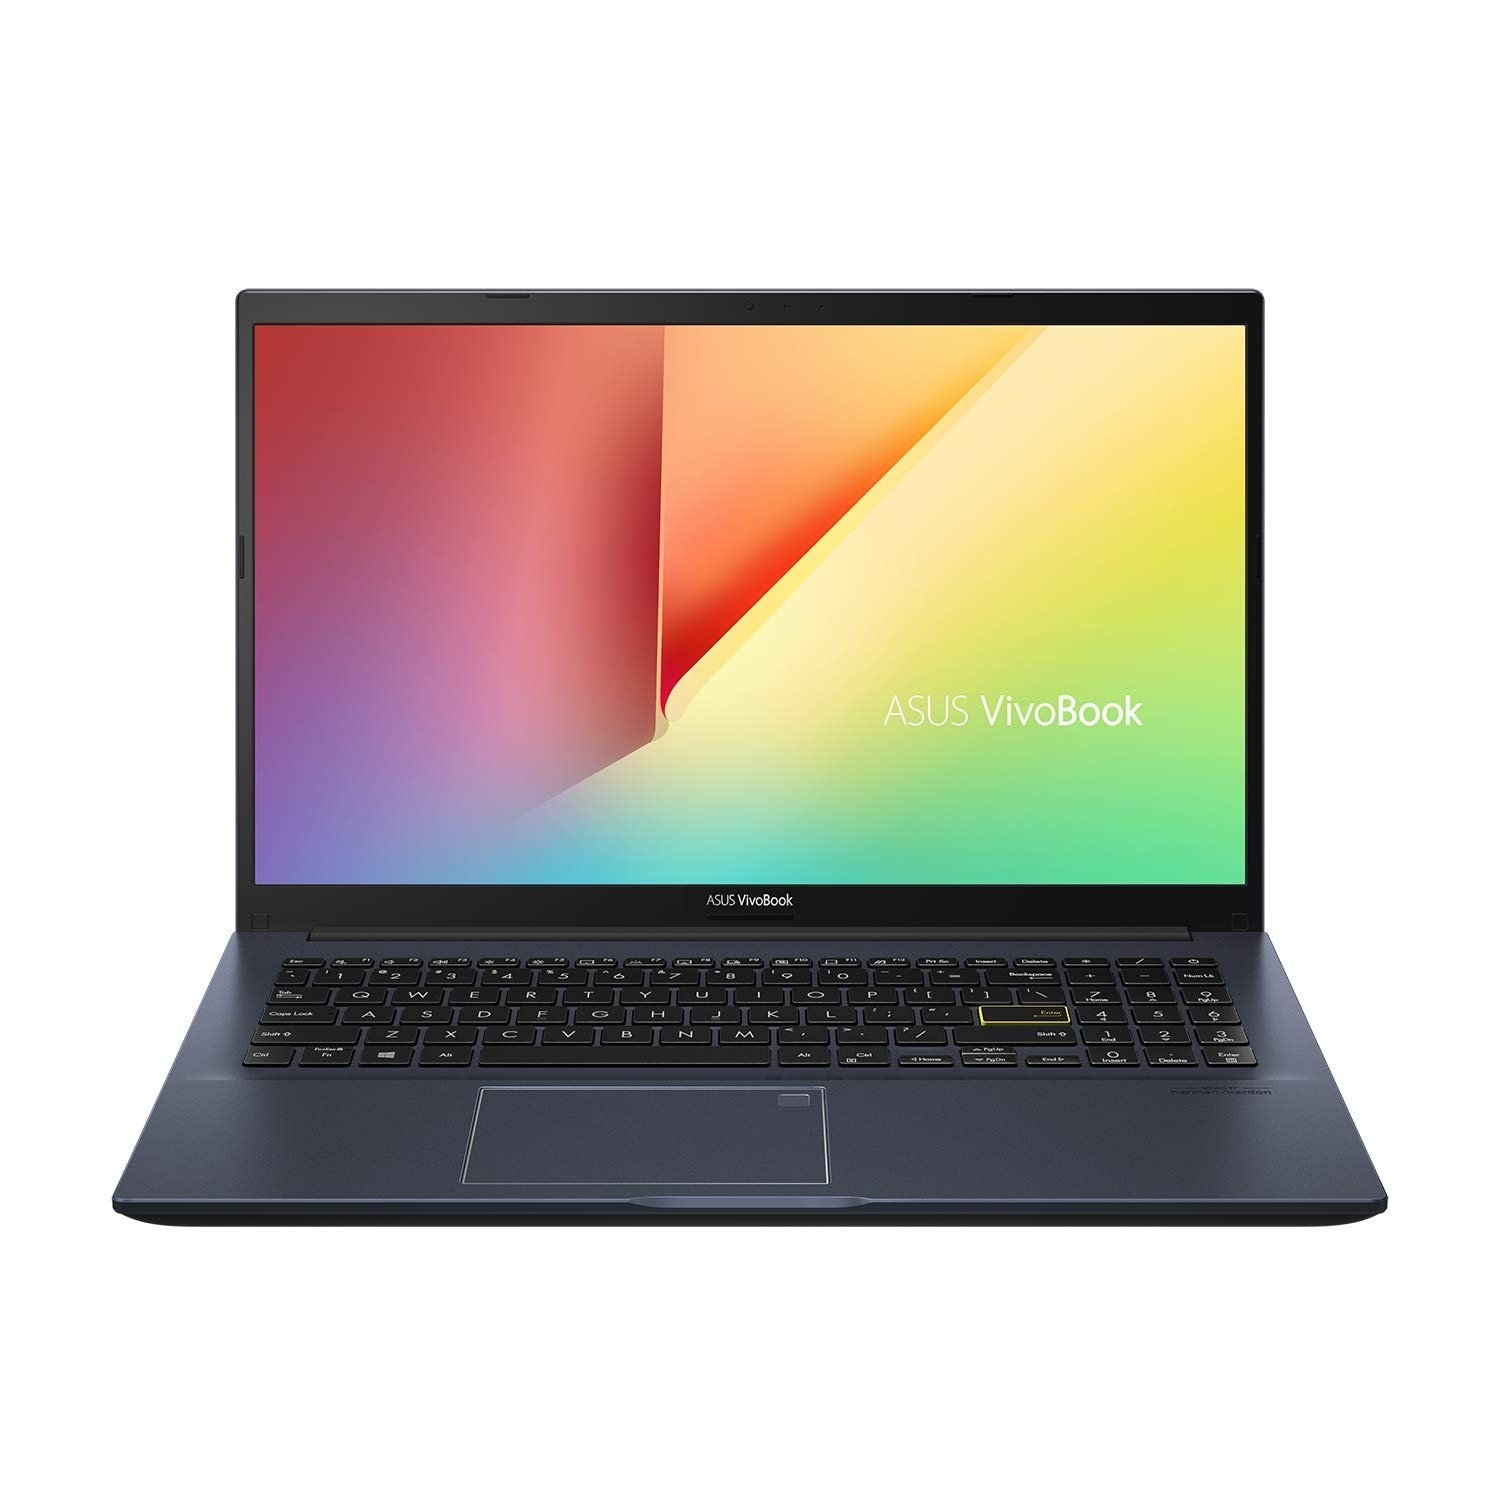 Refurbished laptops & desktops - Asus Vivobook Ultra 15 Amd Ryzen 5 4500U 15.6-Inch FHD Thin And Light Laptop (8GB RAM/512GB Nvme SSD/Windows 10/Integrated Graphics/Bespoke Black/1.80 Kg), M513Ia-Ej310T